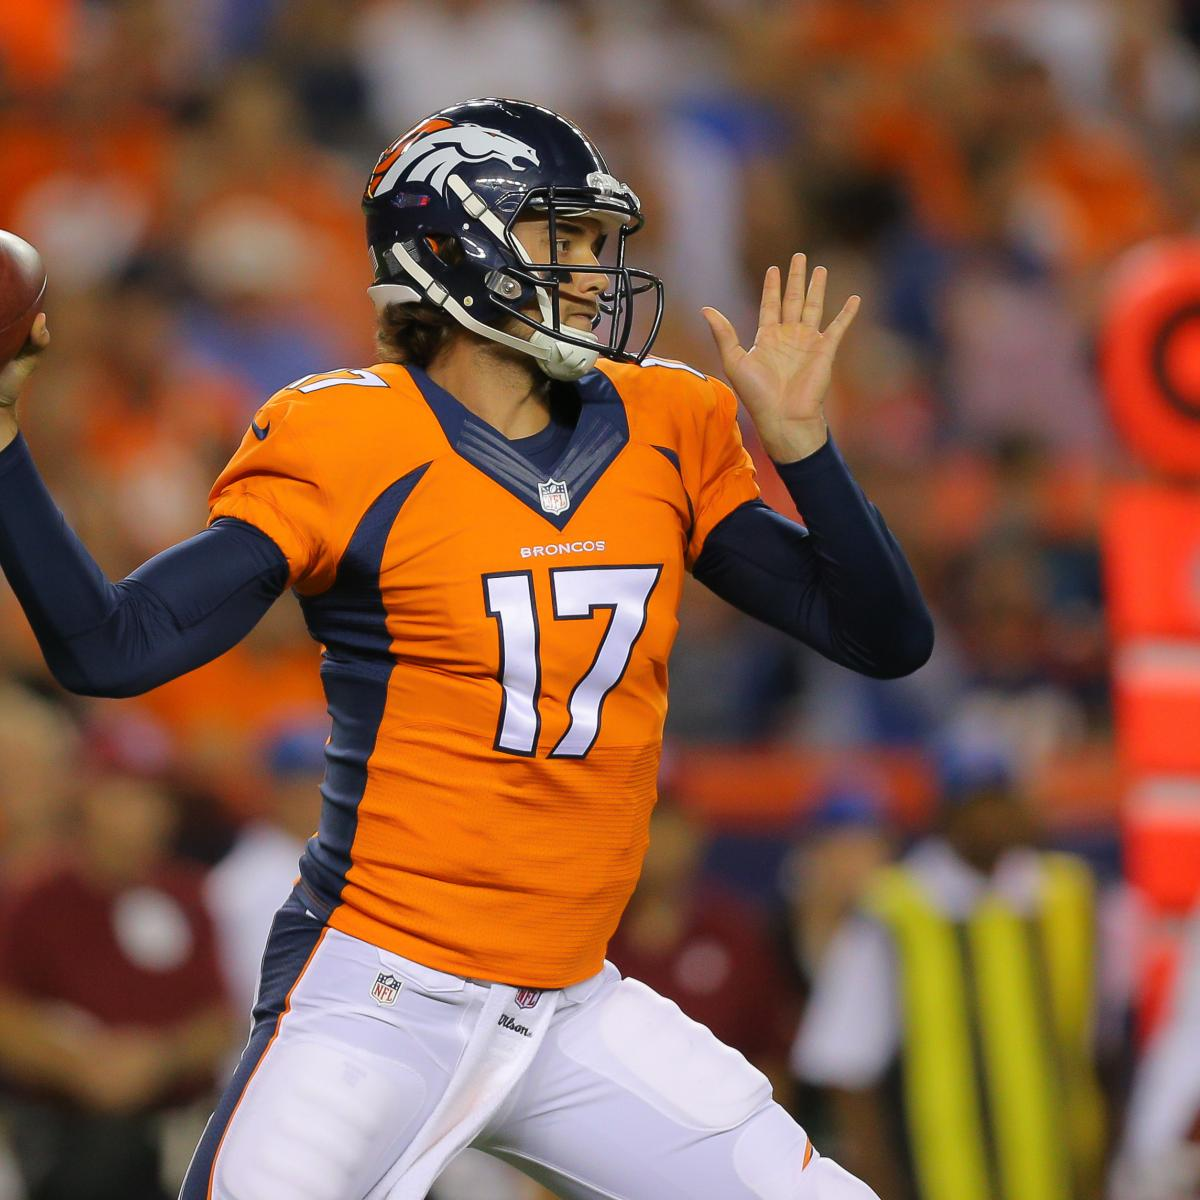 Denver Broncos Vs. Dallas Cowboys: Live Score And Analysis